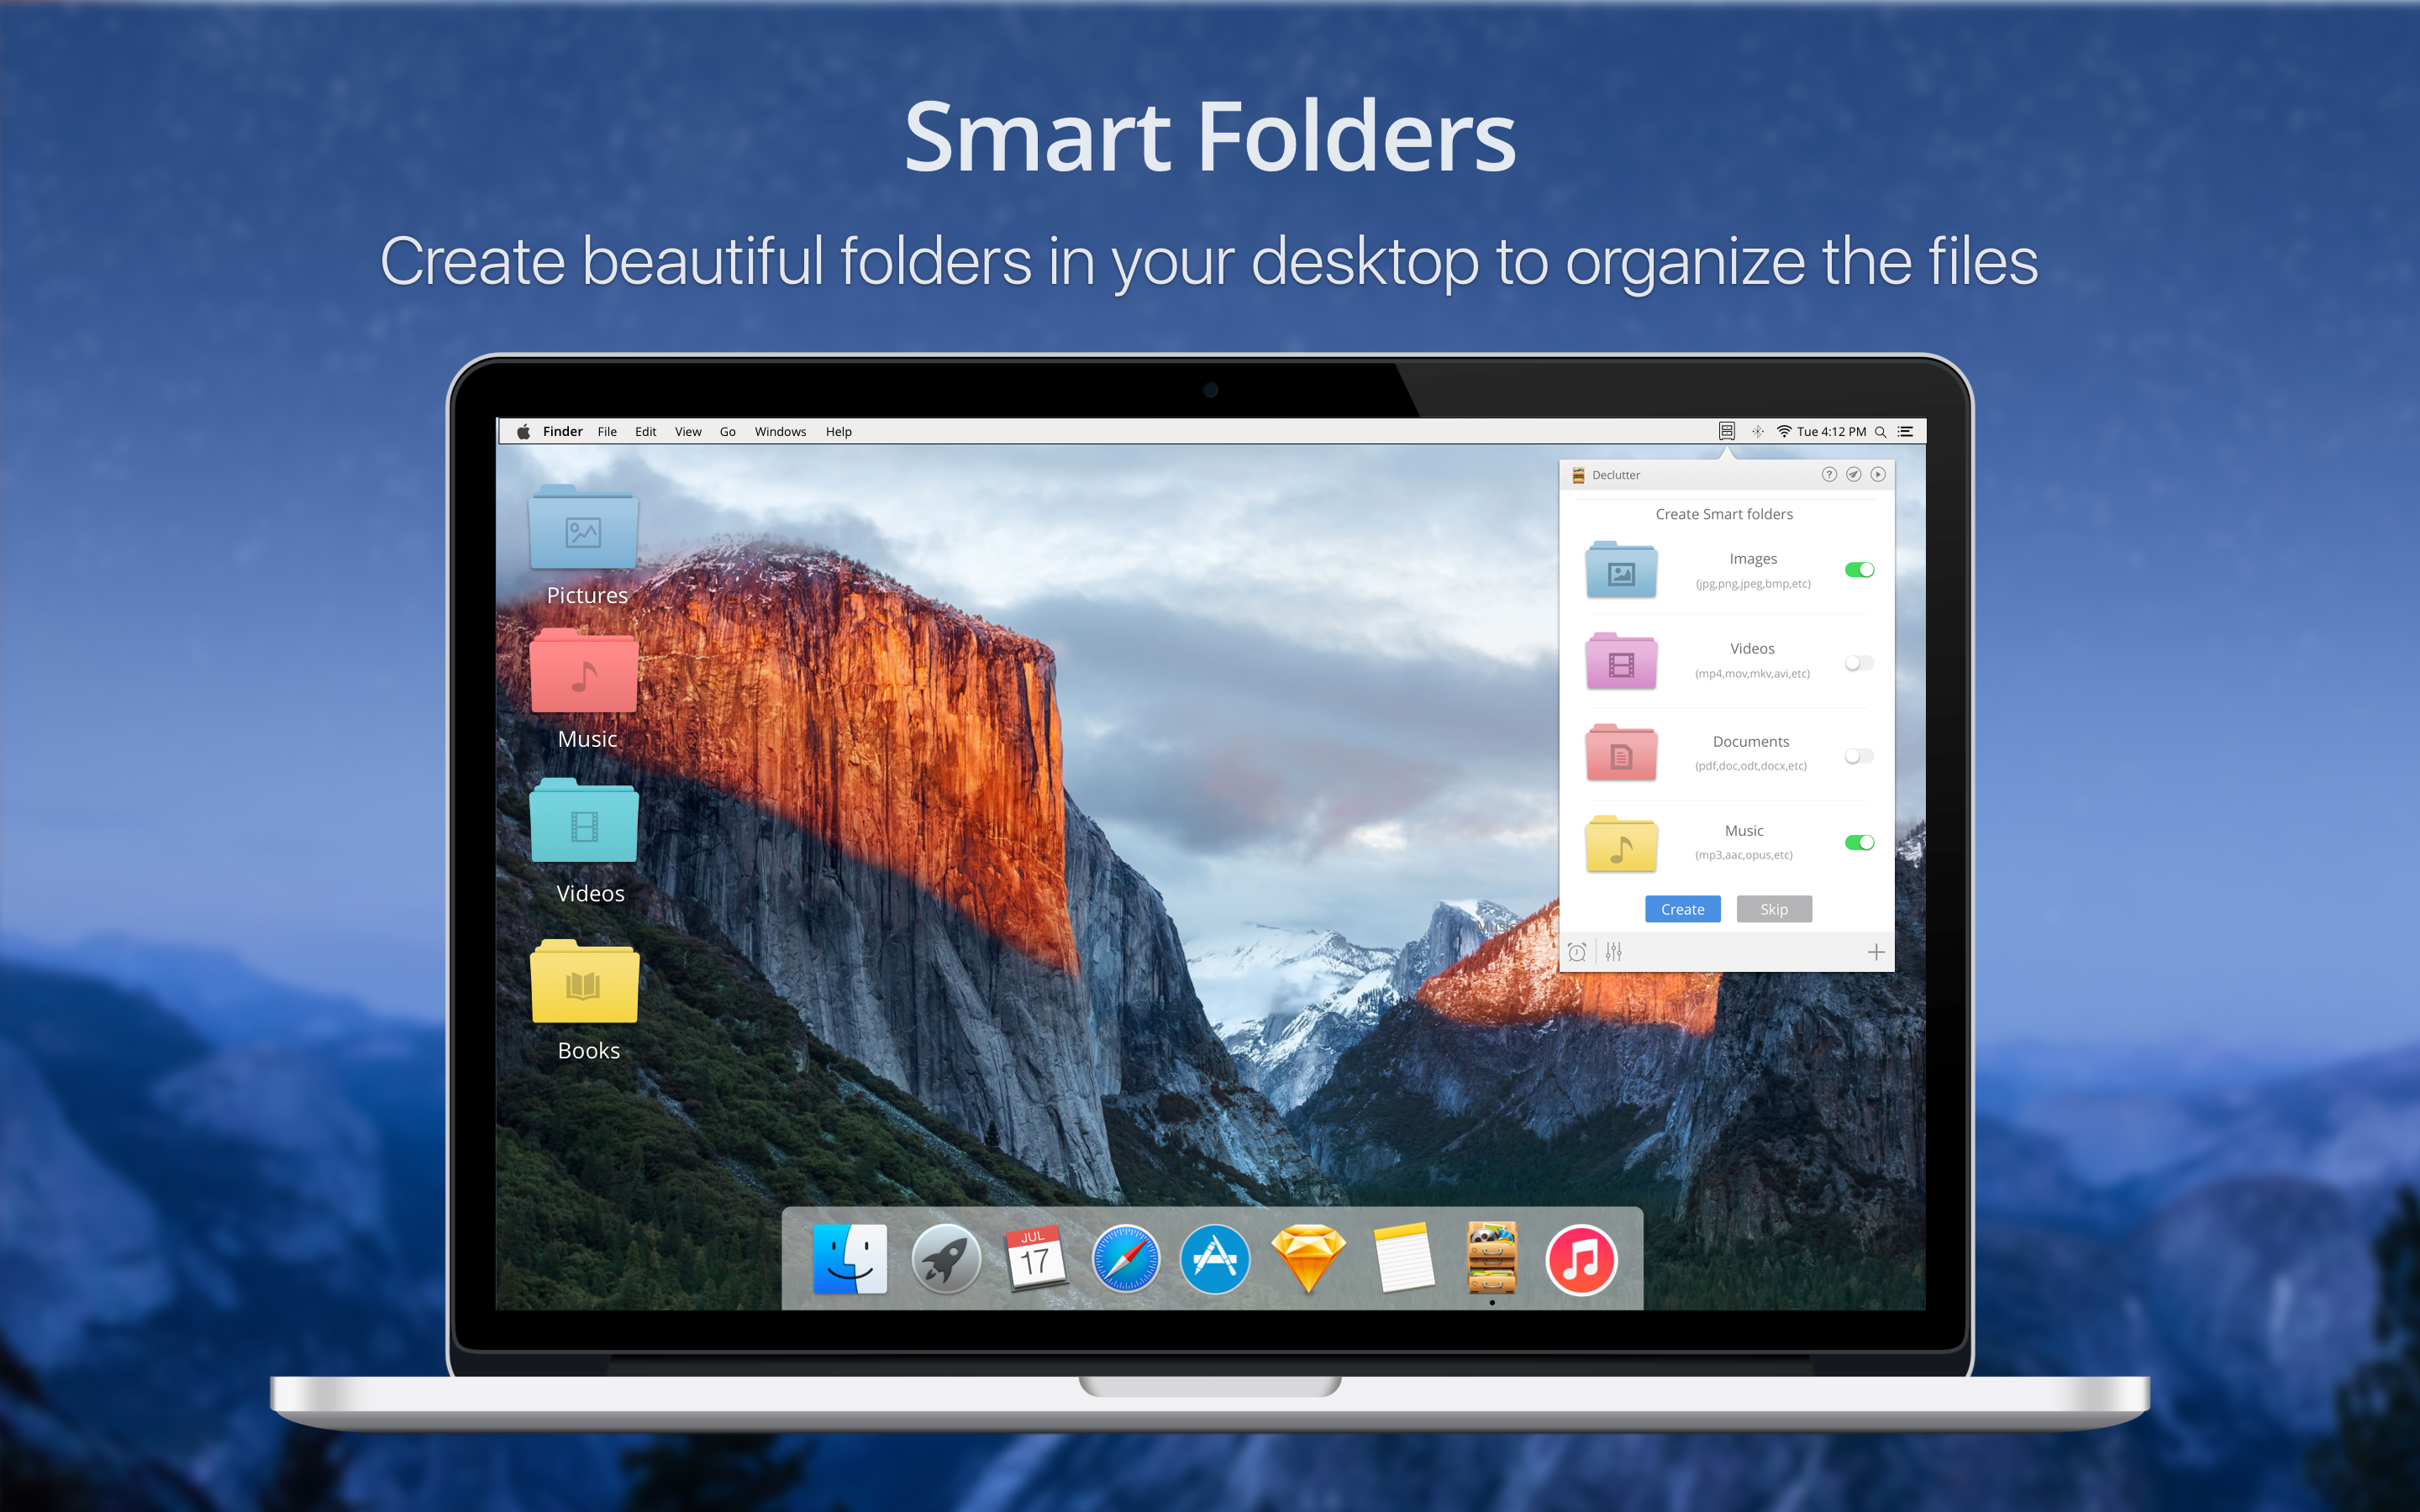 Smart folders - Create beautiful folders in your desktop to organize the files